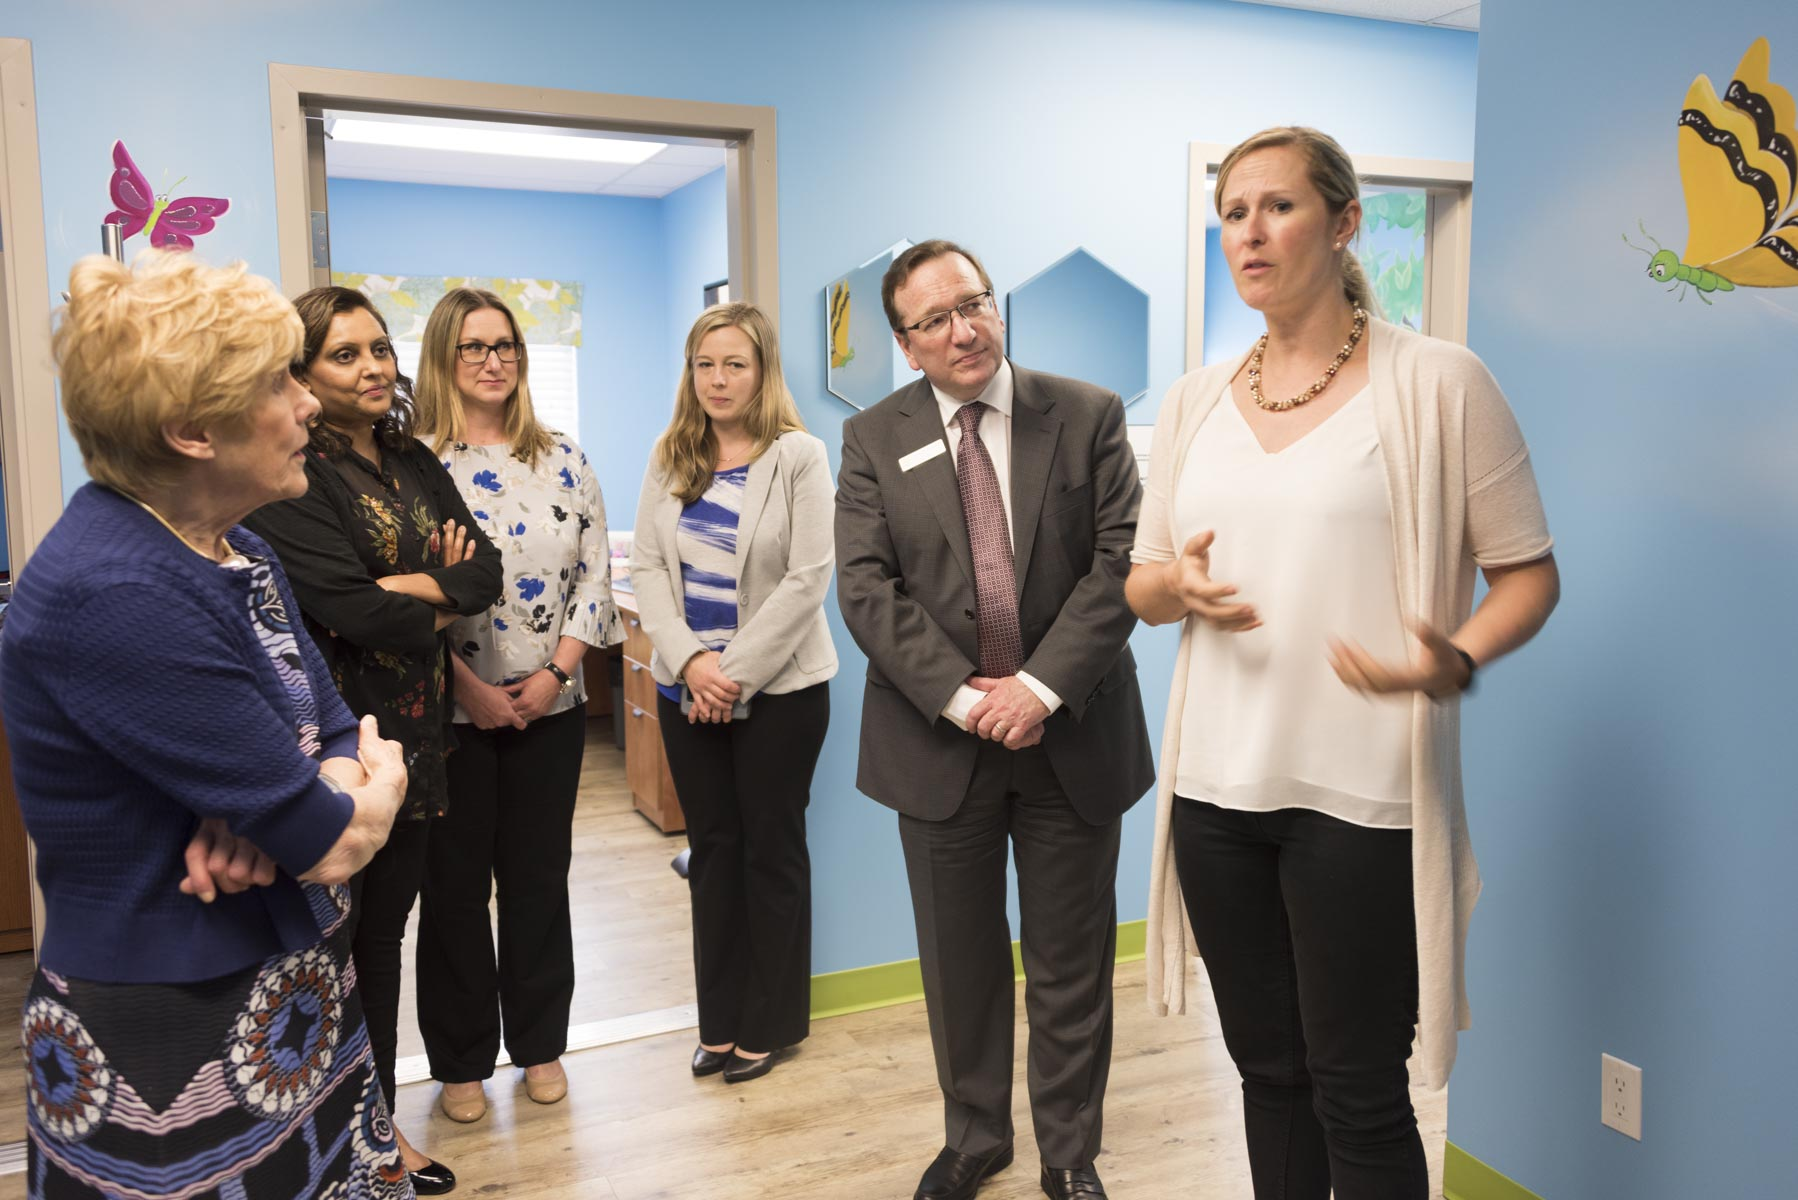 Within the same facility, she also visited Sophie's Place, which was created to help young victims of physical, mental, emotional or sexual abuse.